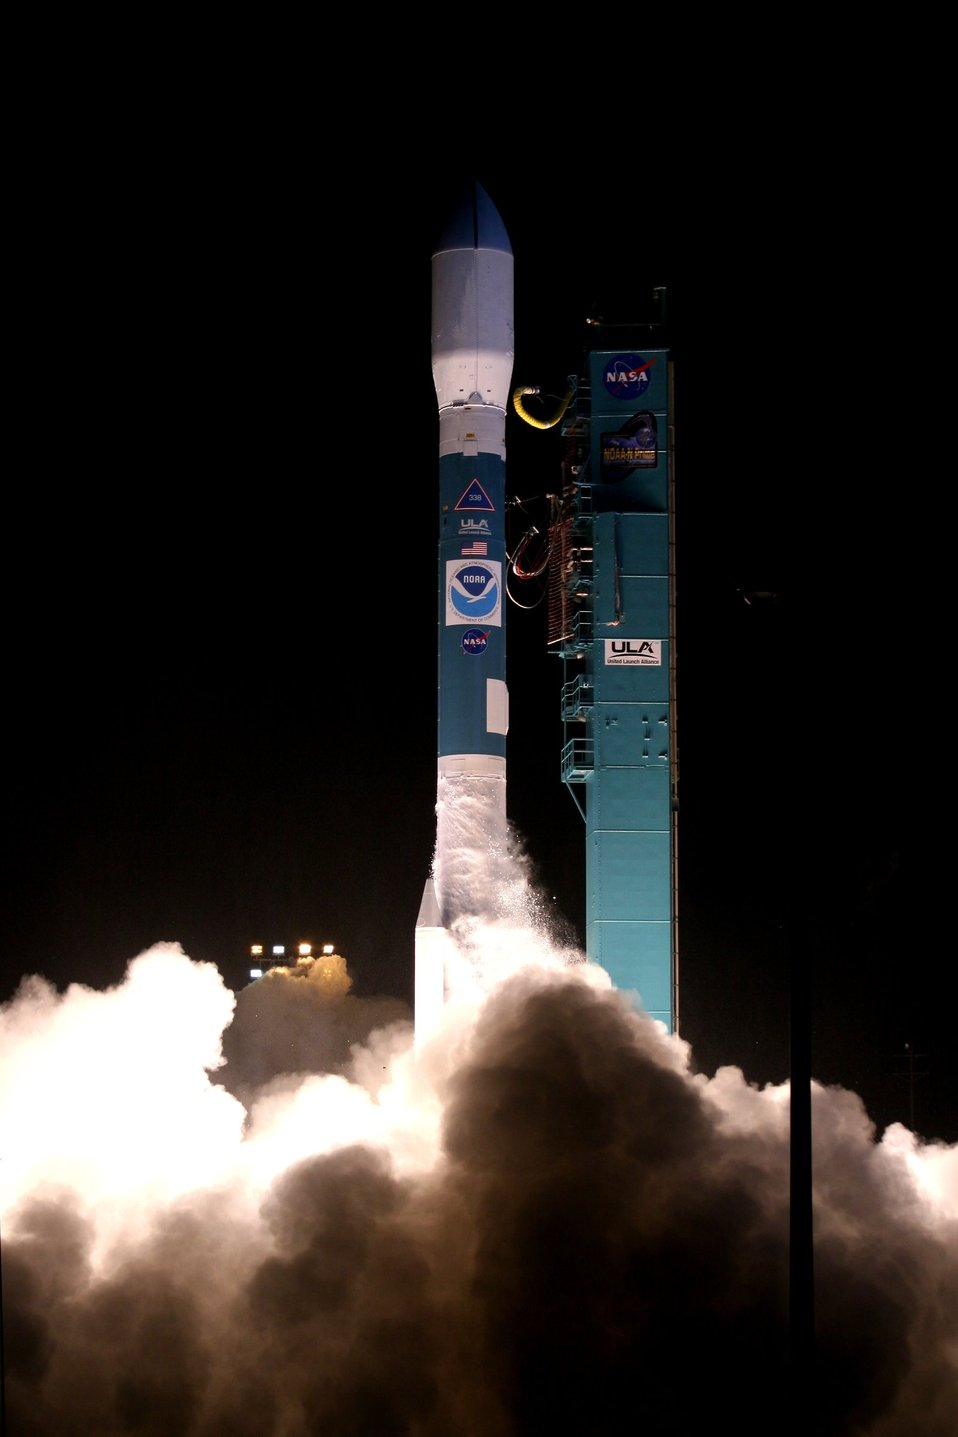 Launch of NOAA-N Prime from Vandenberg Air Force Base.